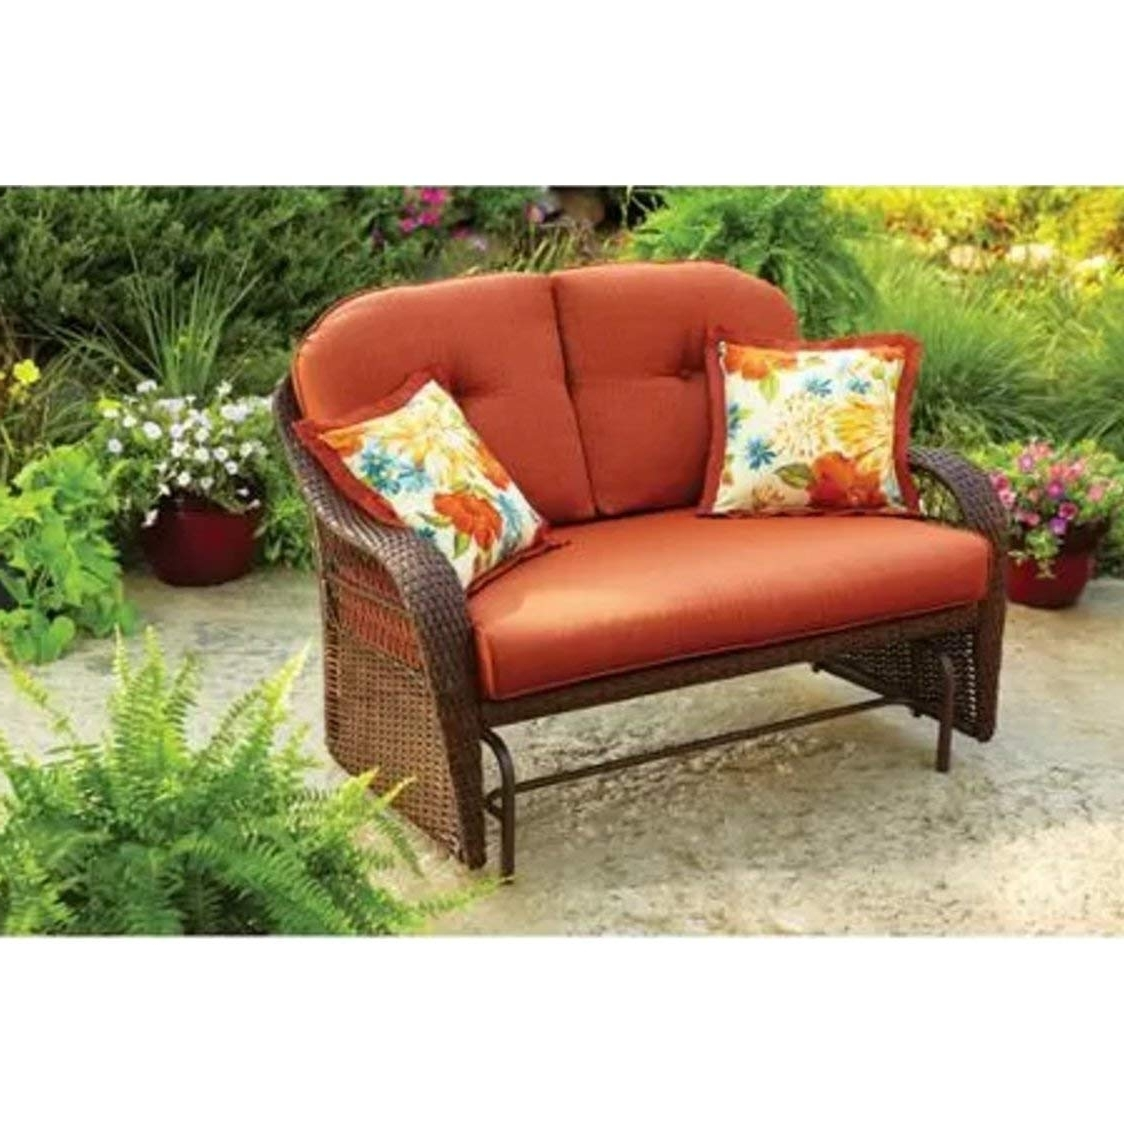 2019 Patio Conversation Sets With Glider Inside Outdoor Patio Glider Better Homes And Gardens Garden Furniture (View 17 of 20)